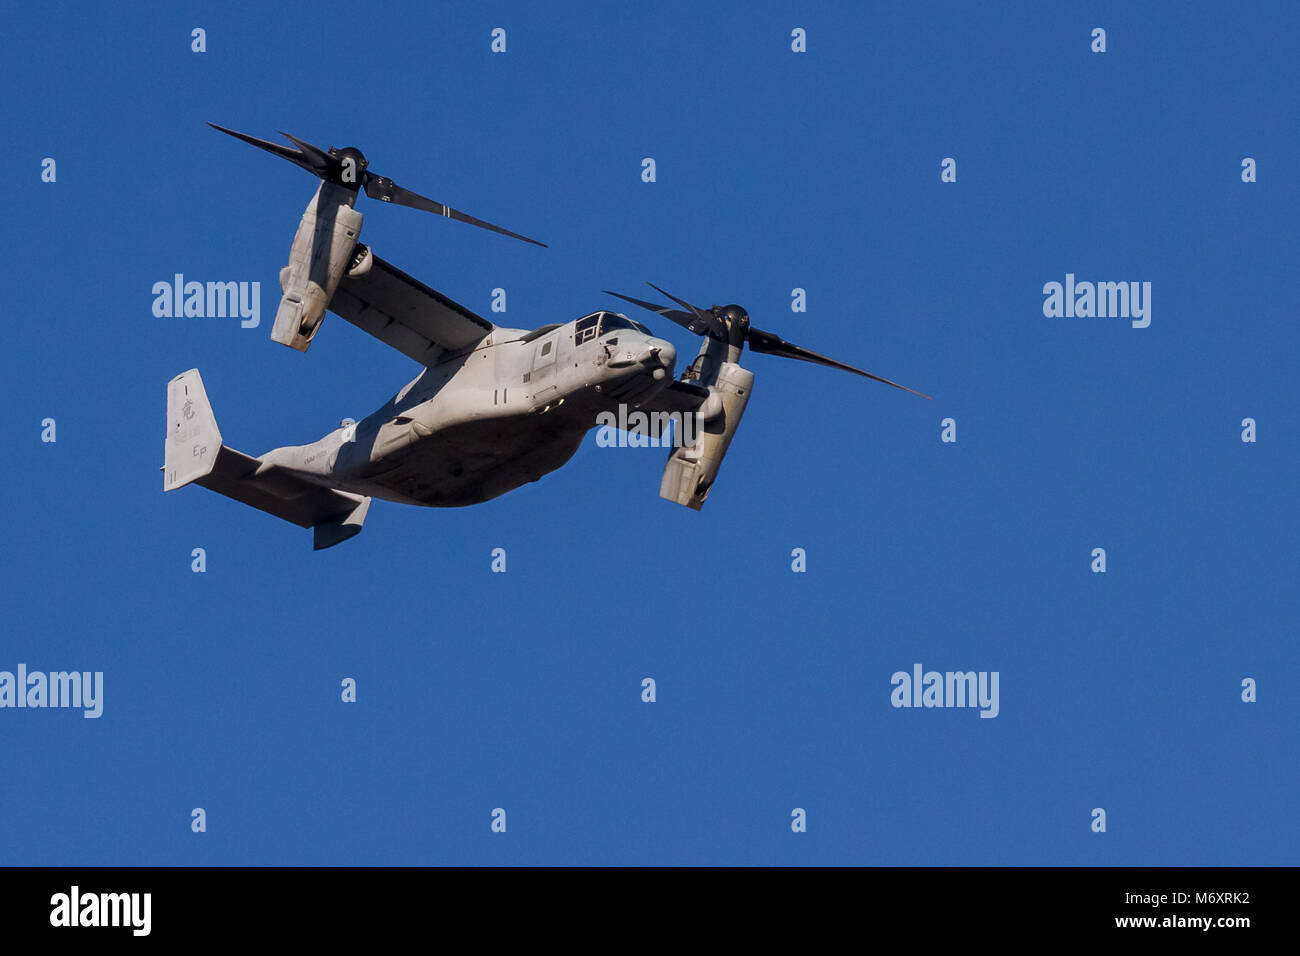 Bell Boeing V-22 Osprey tilt-rotor aircraft, operated by the US Marine Corps, flying over Chuo Rinkan in Kanagawa, - Stock Image